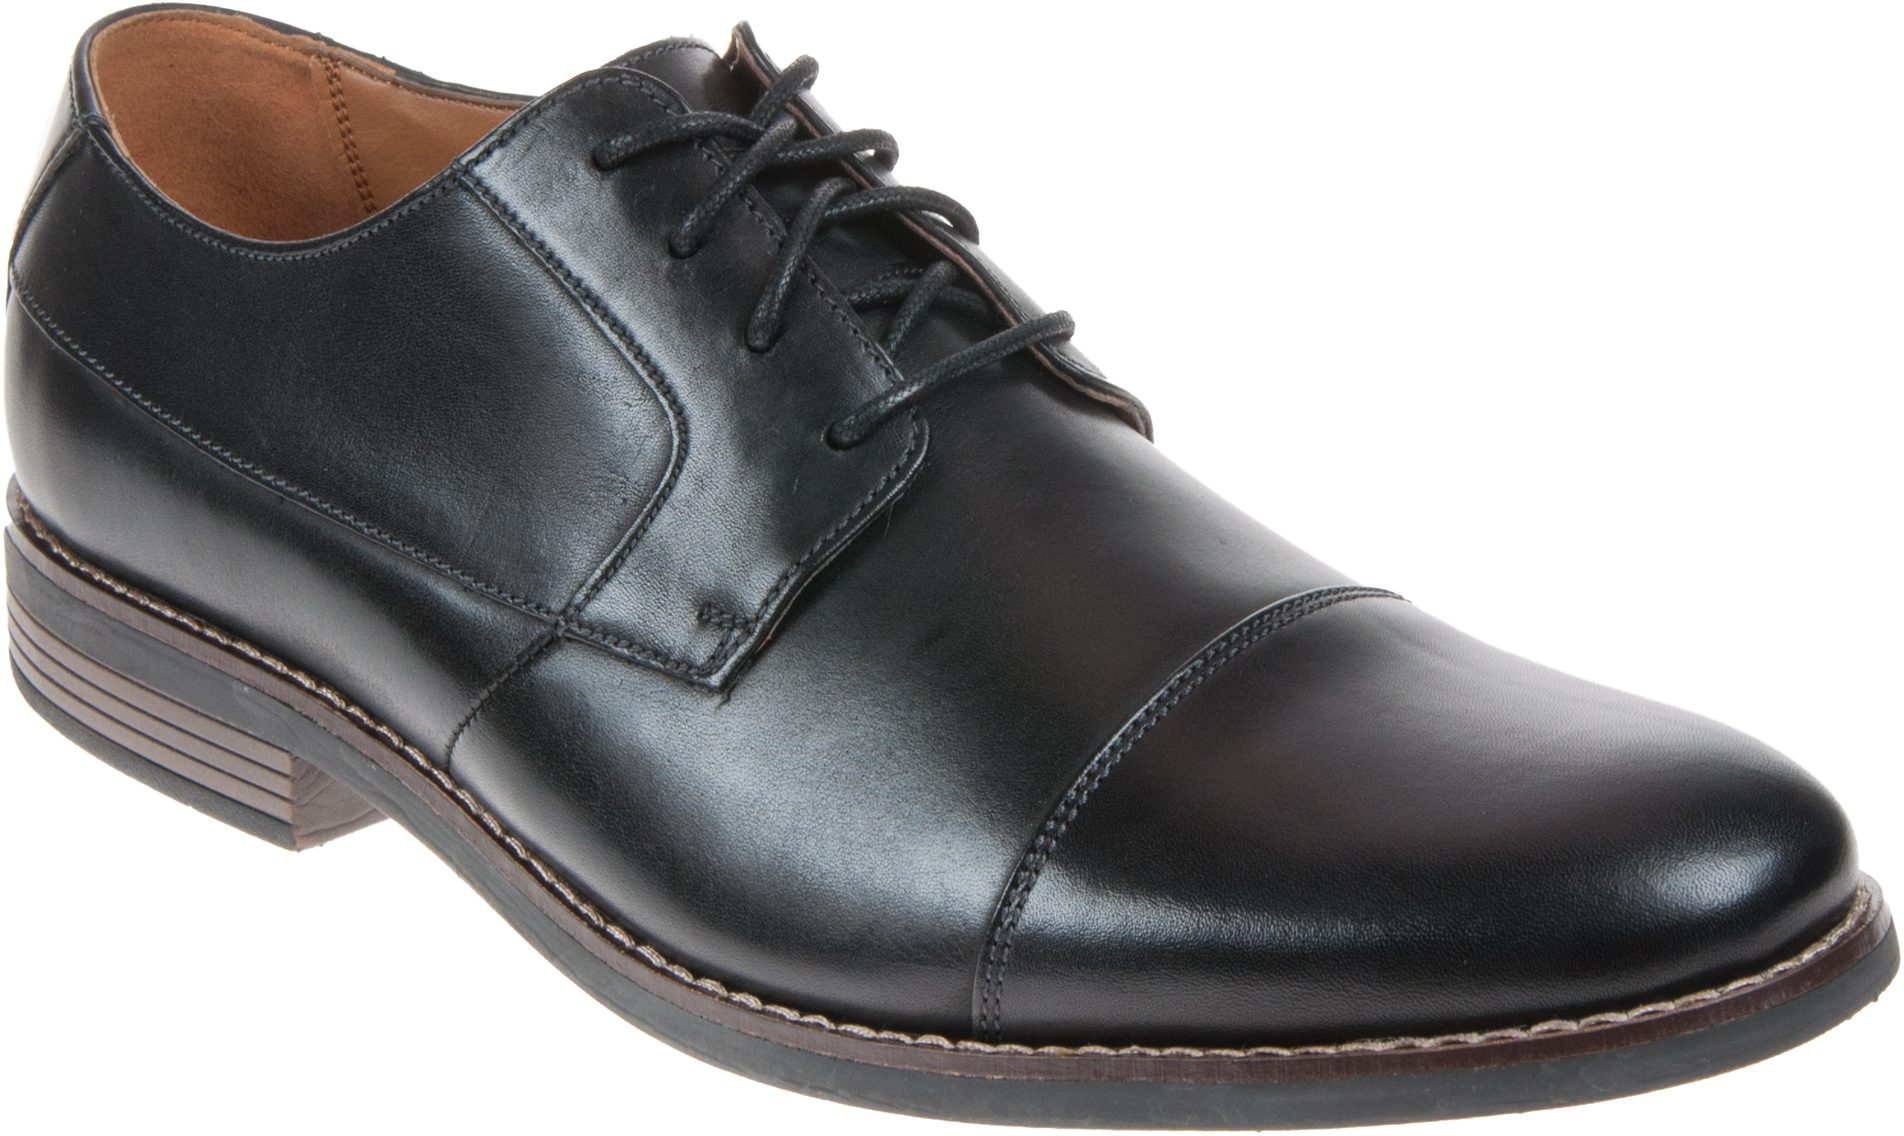 edeb8c27b81b Clarks Becken Cap Black Leather 26123139 - Formal Shoes - Humphries Shoes